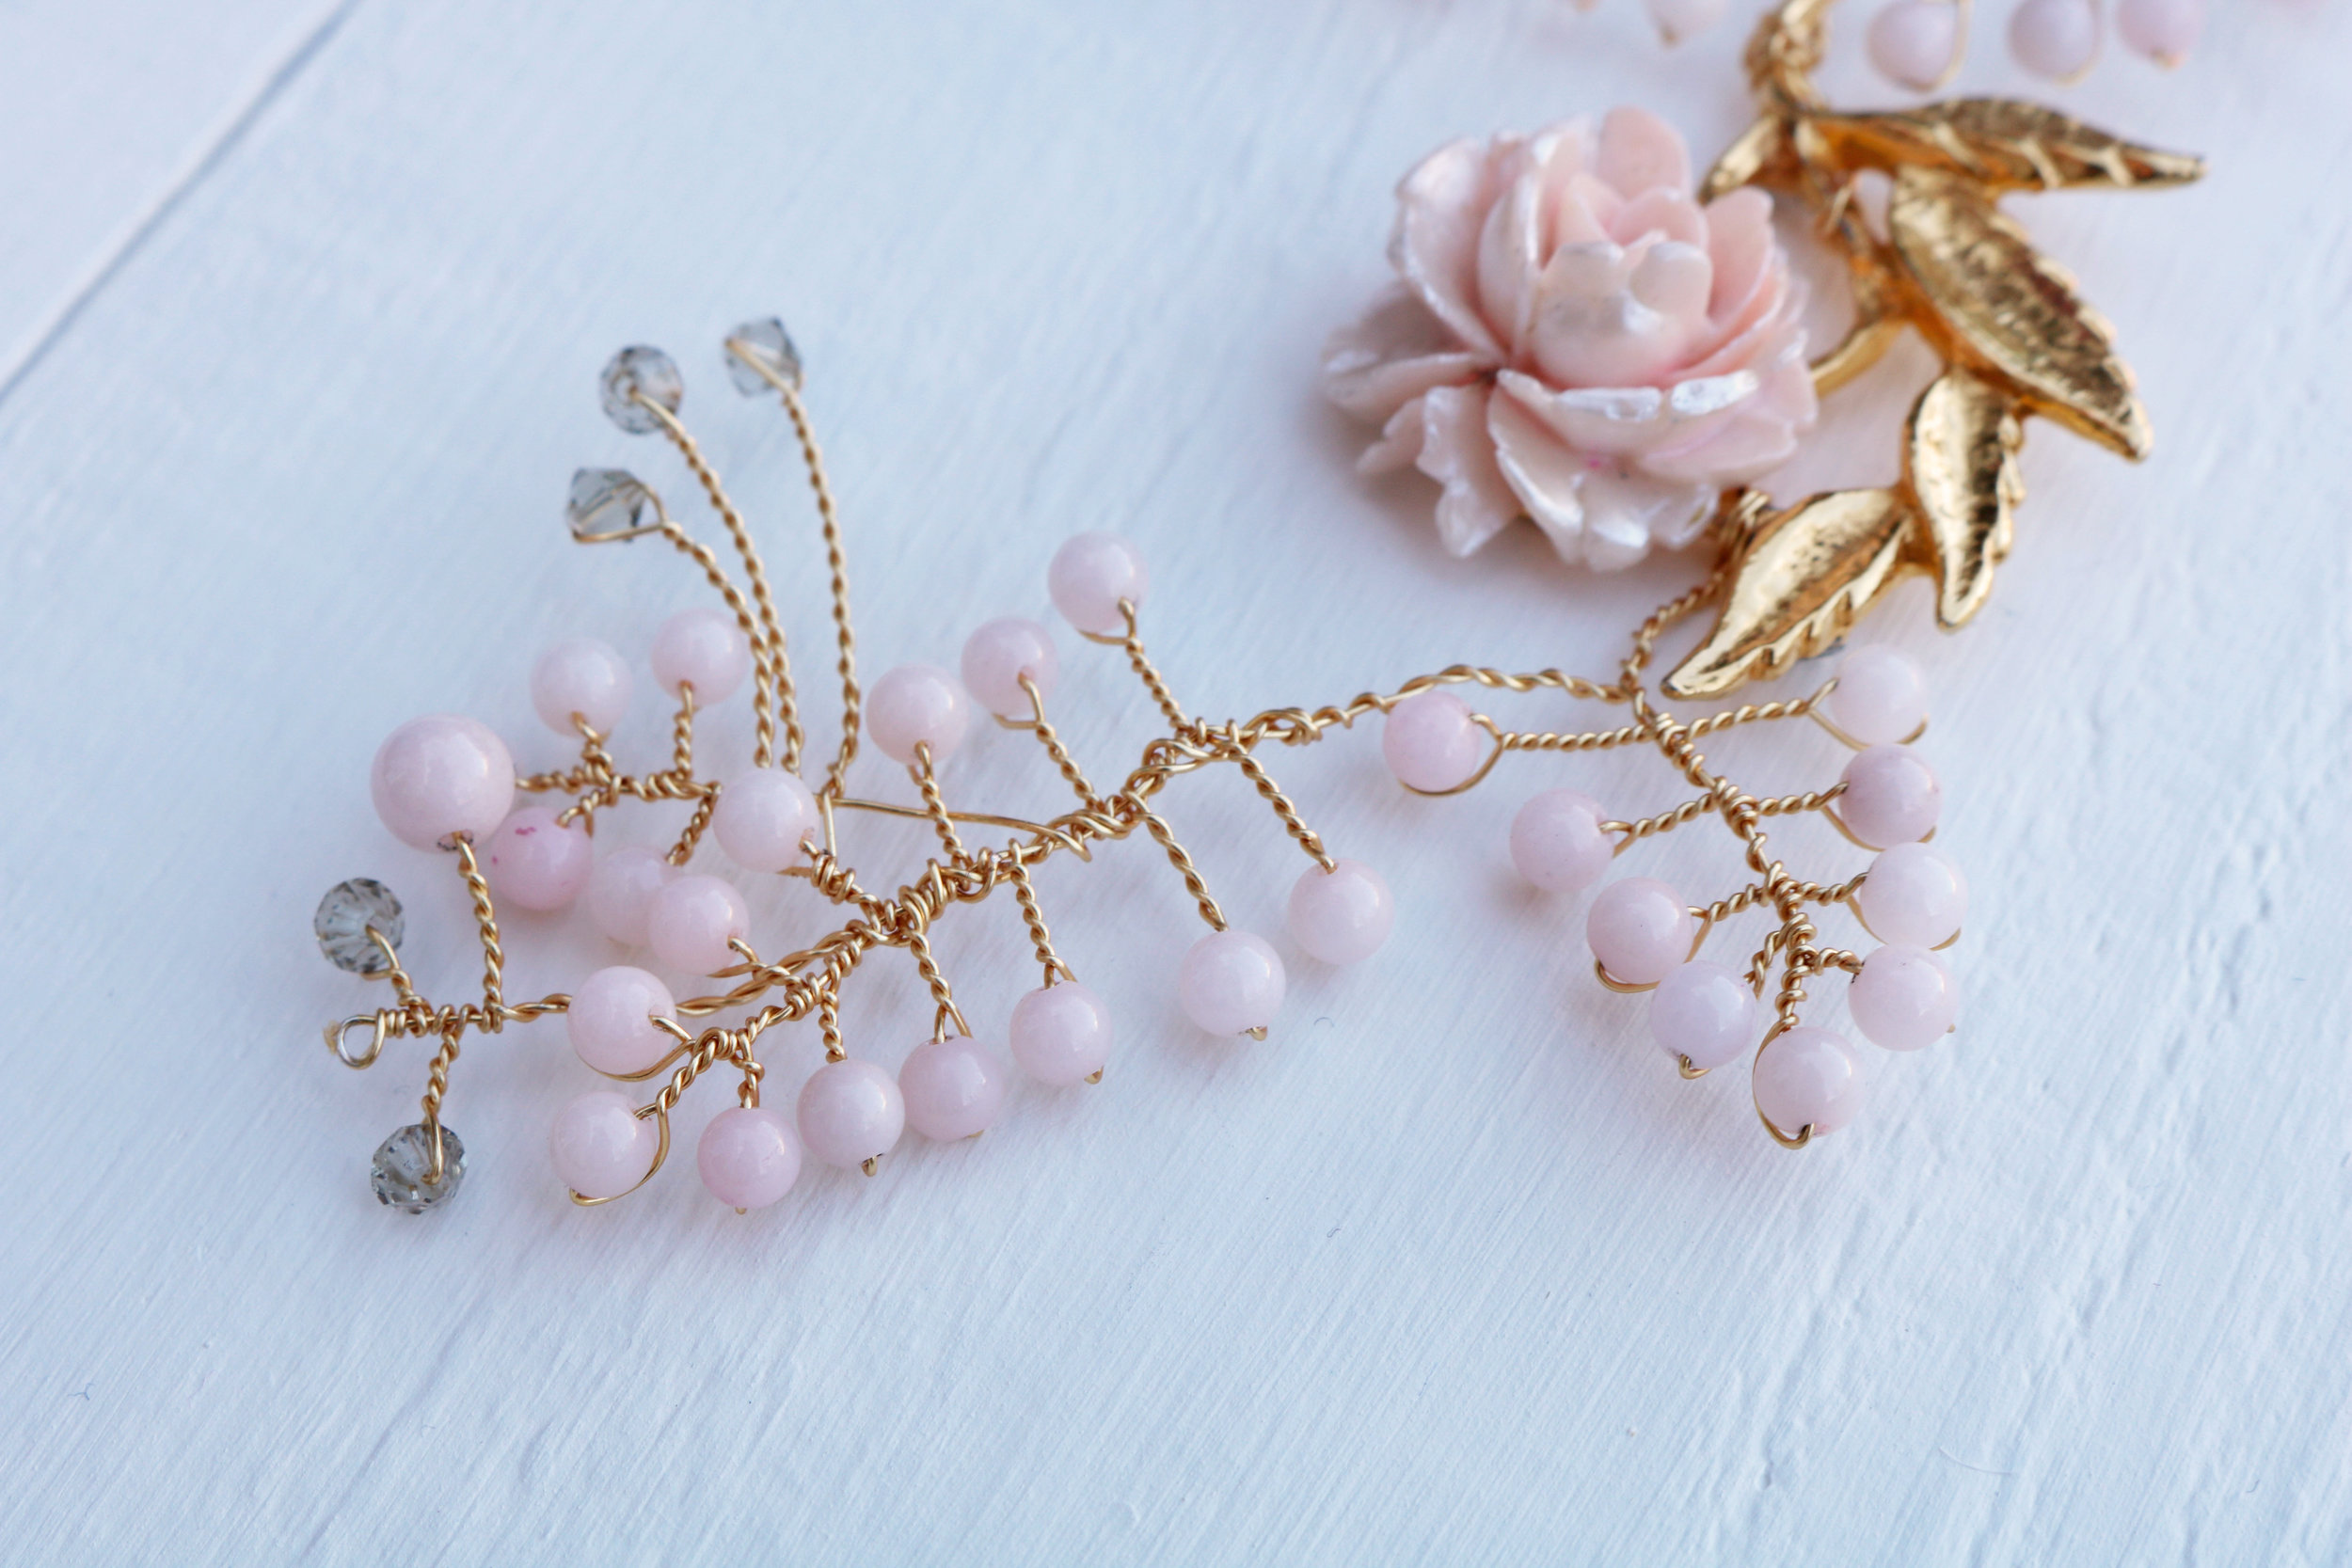 A vine that's inspired many more...using vintage brooches has become part of my signature style, along with delicate branches with neat twists and subtle colour every now and then!